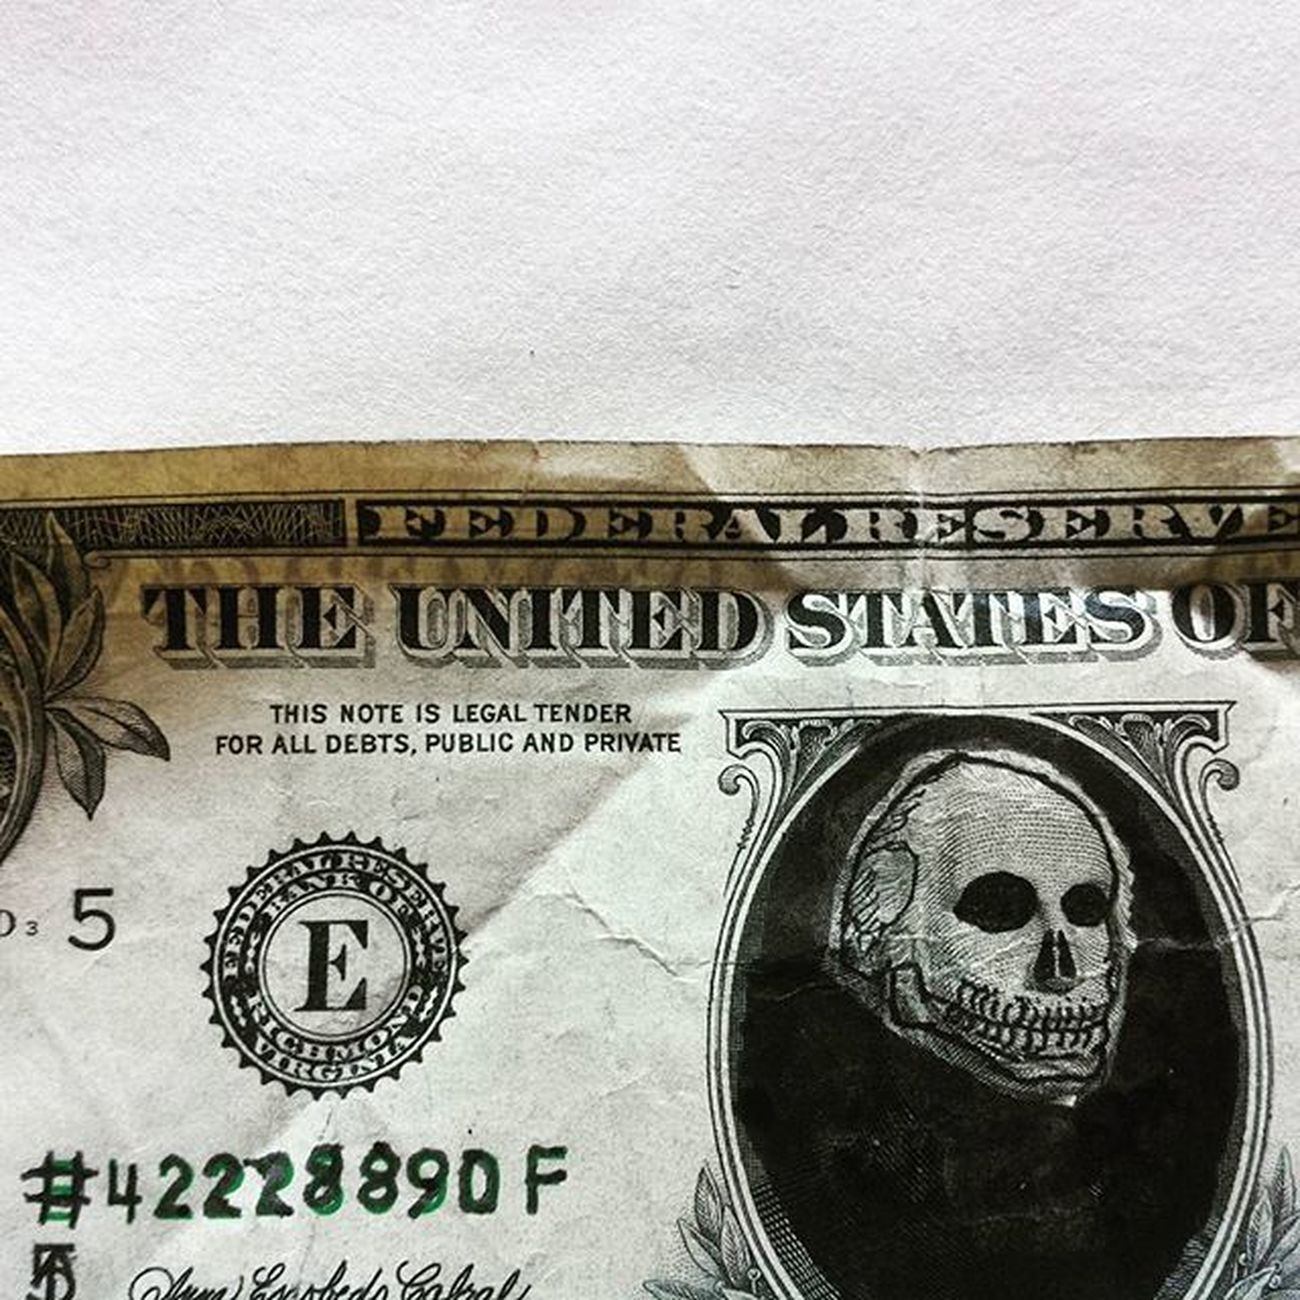 Bord af 42228890F 42228890F Dollar Art Artsy Arting Face Pendrawing Something Sketch Dollarart Skull Intaart Instagram Instalove Instadaily Instagood